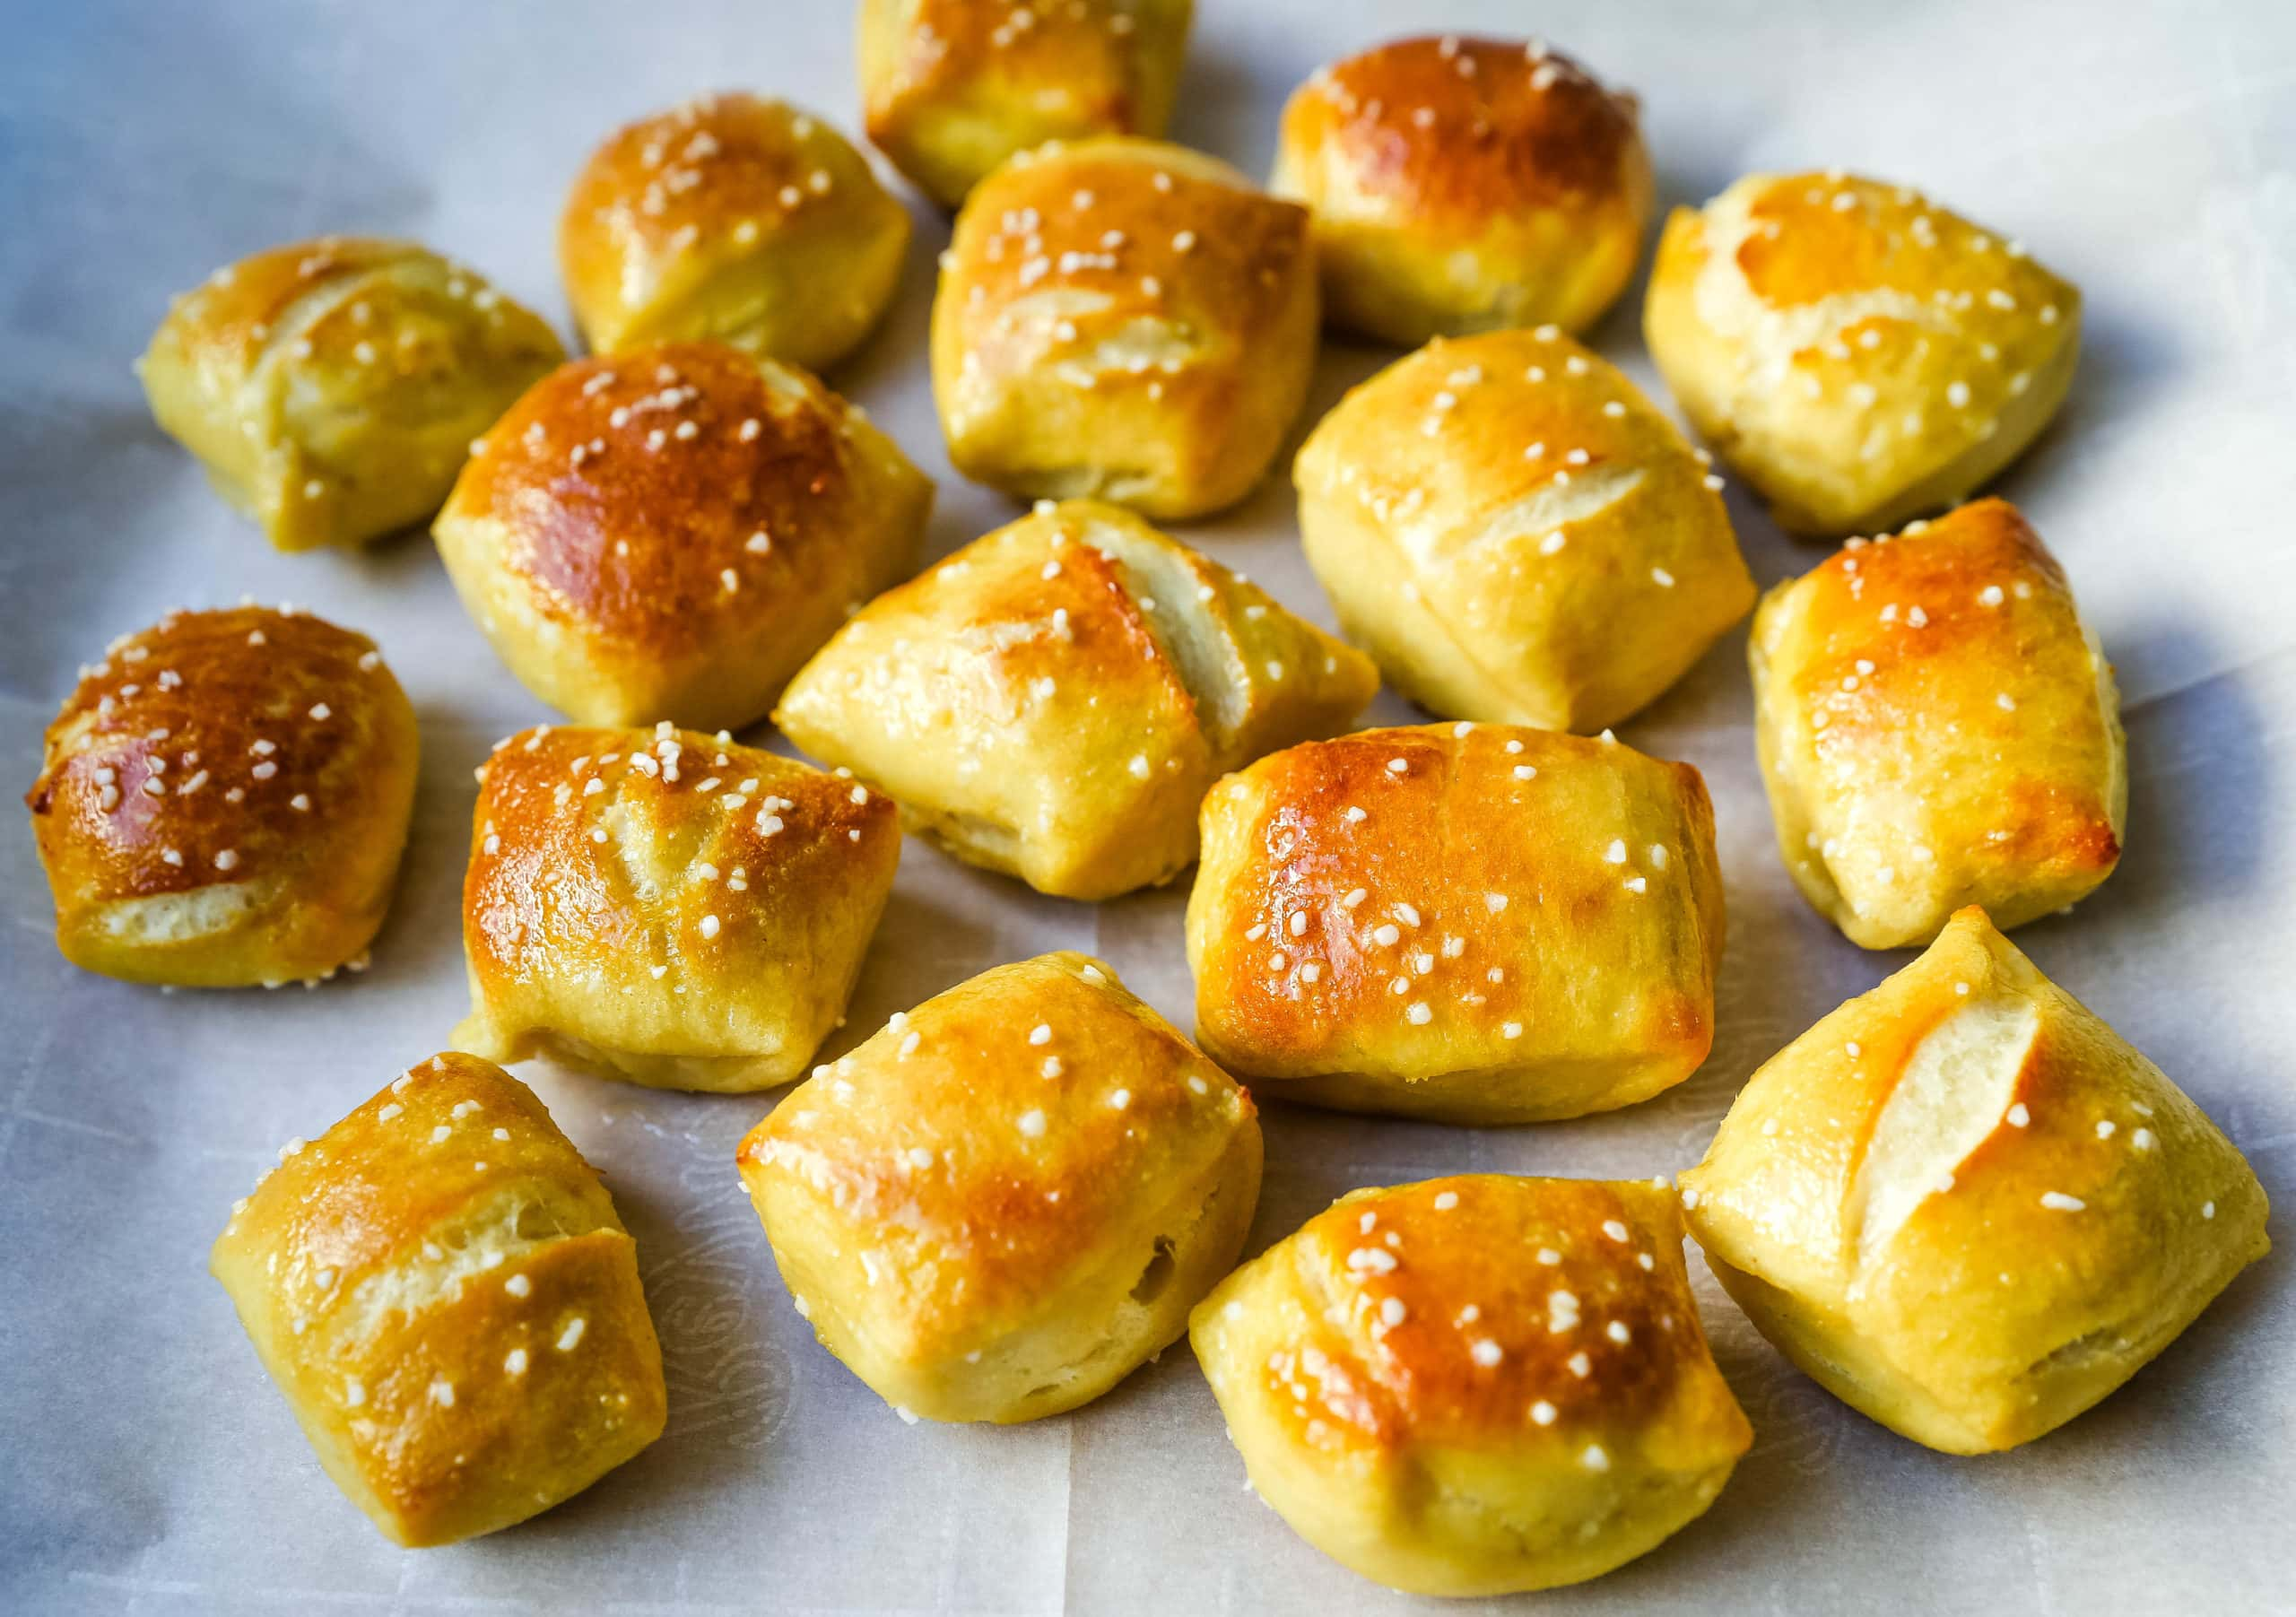 Homemade Soft Pretzel Bites Soft buttery homemade pretzel bites just like you find in the pretzel stores in the mall but even better! It is so easy to make pretzel bites at home. www.modernhoney.com #pretzels #pretzel #homemadepretzels #pretzelbites